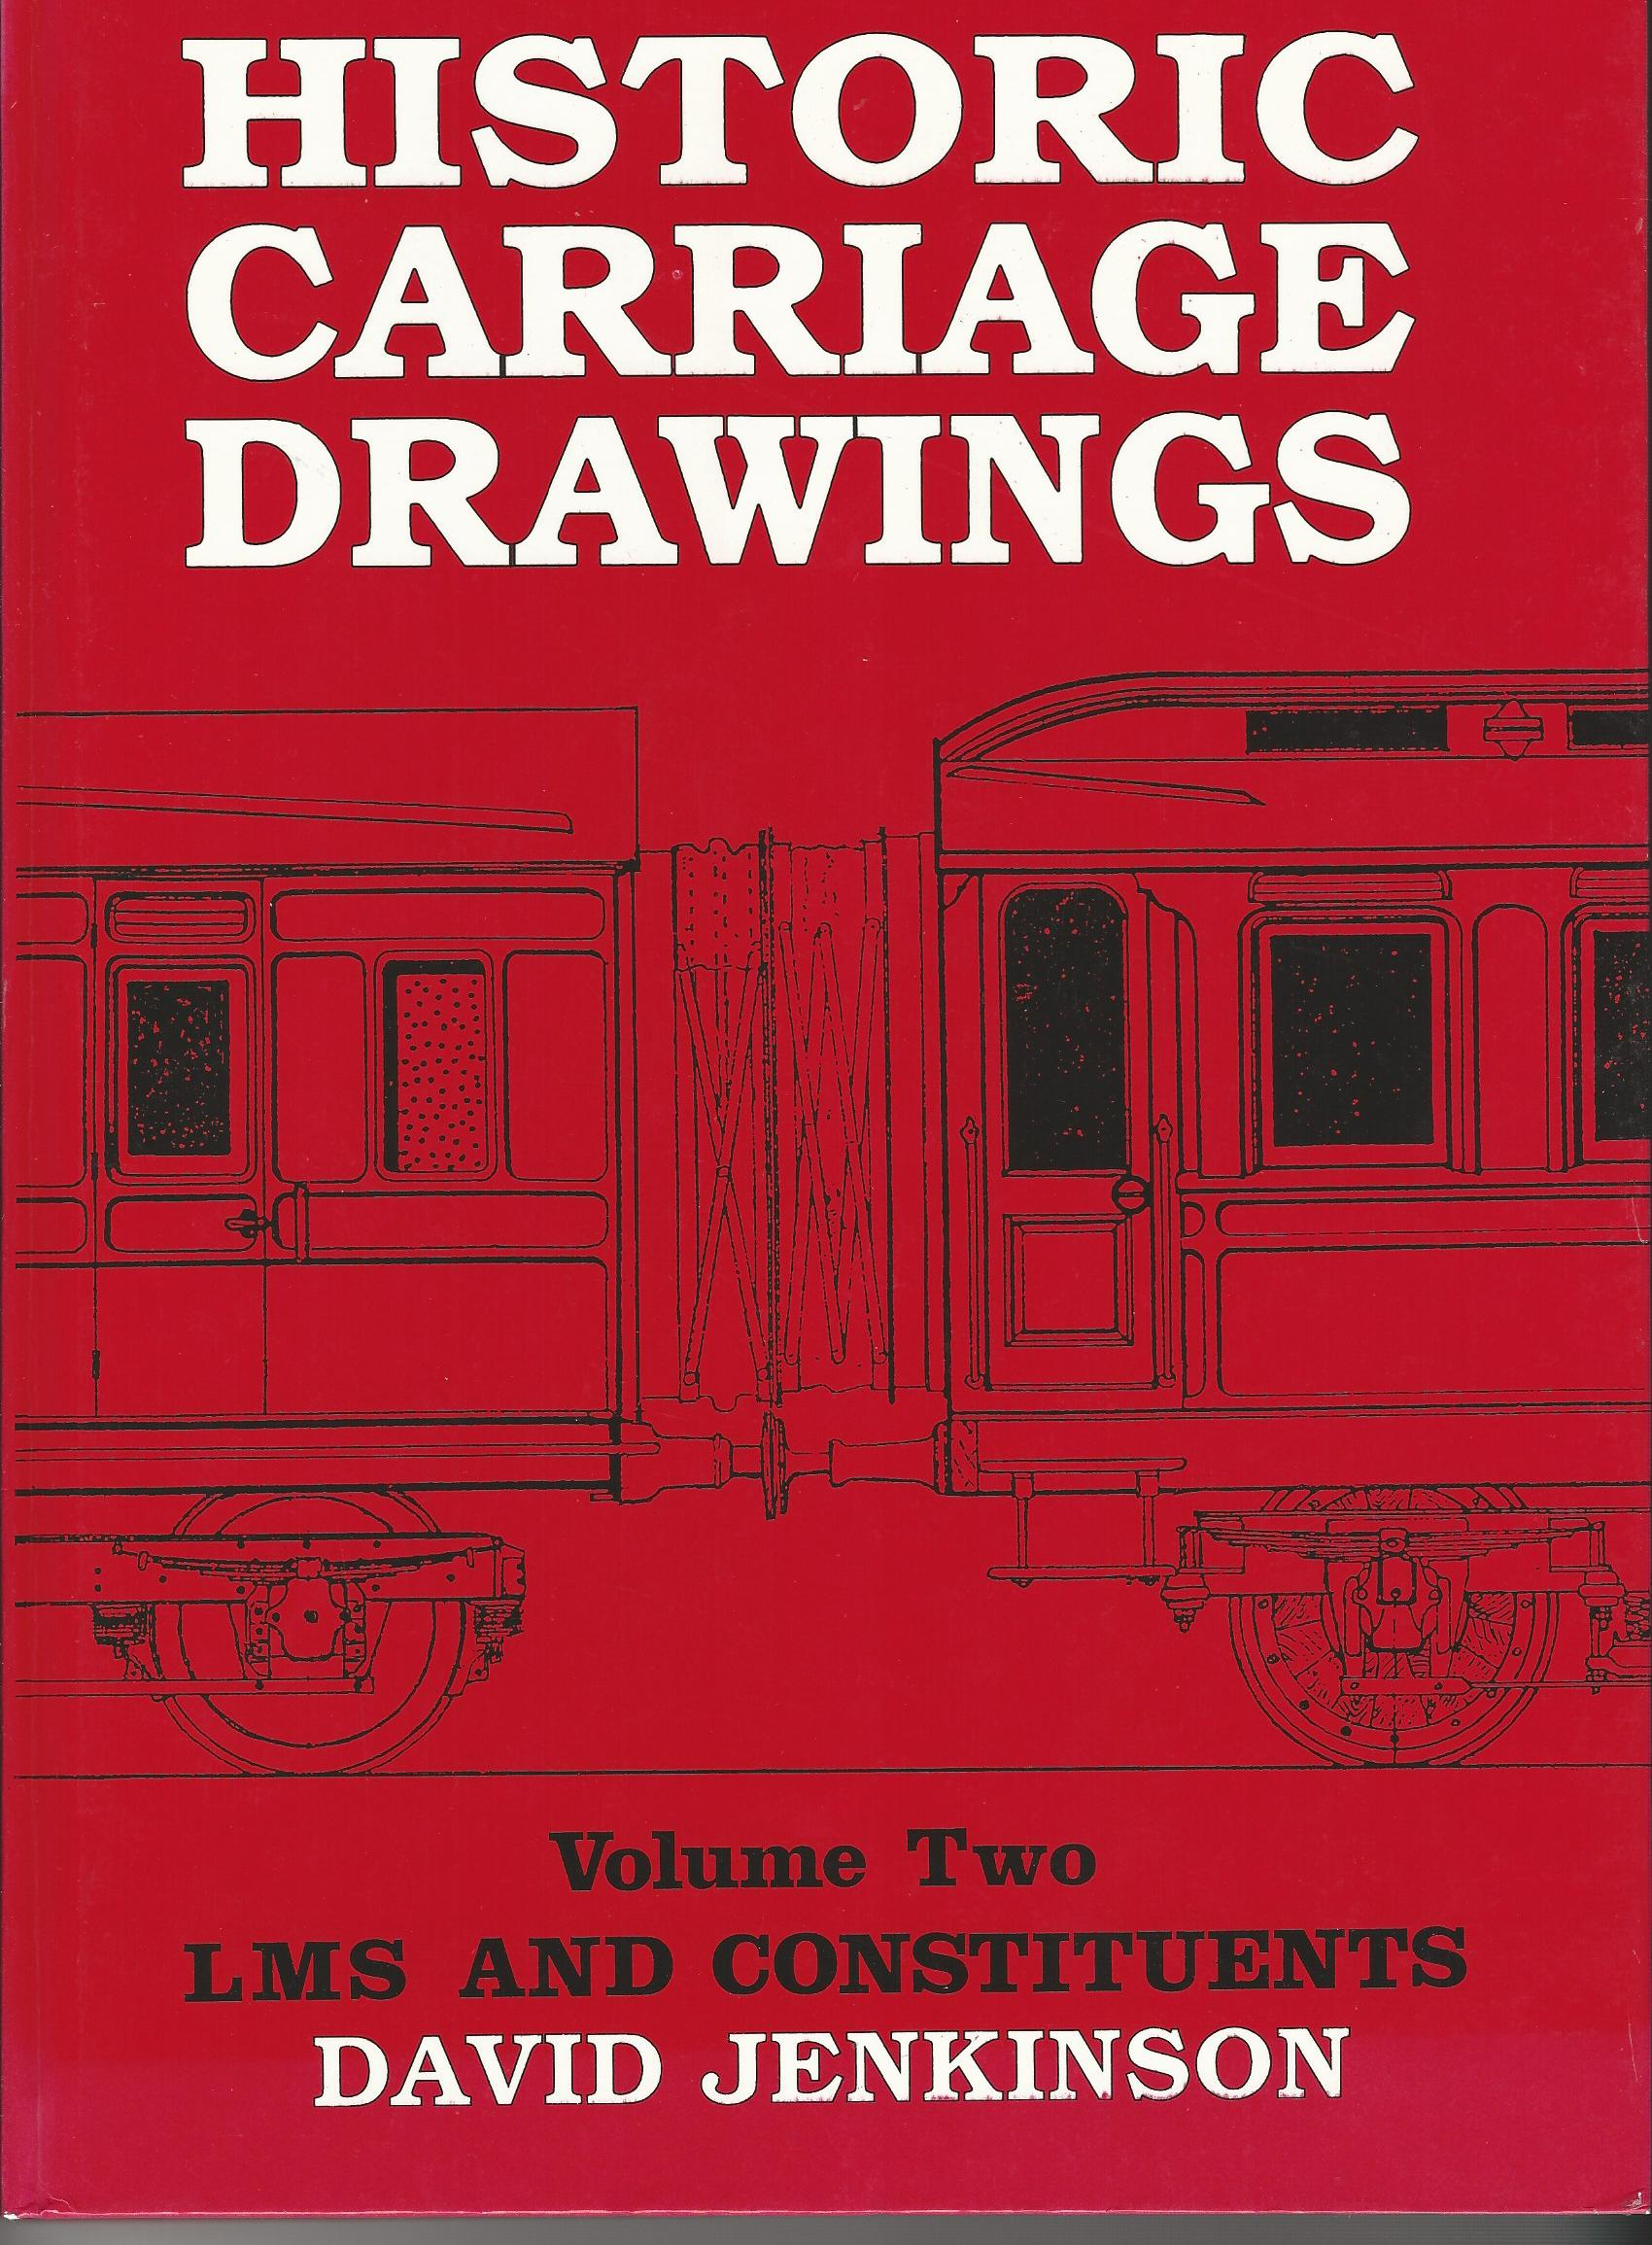 Image for Historic Carriage Drawings LMS and Constituents, Vol. 2 and Vol.3 Non-Passenger Coaching Stock.